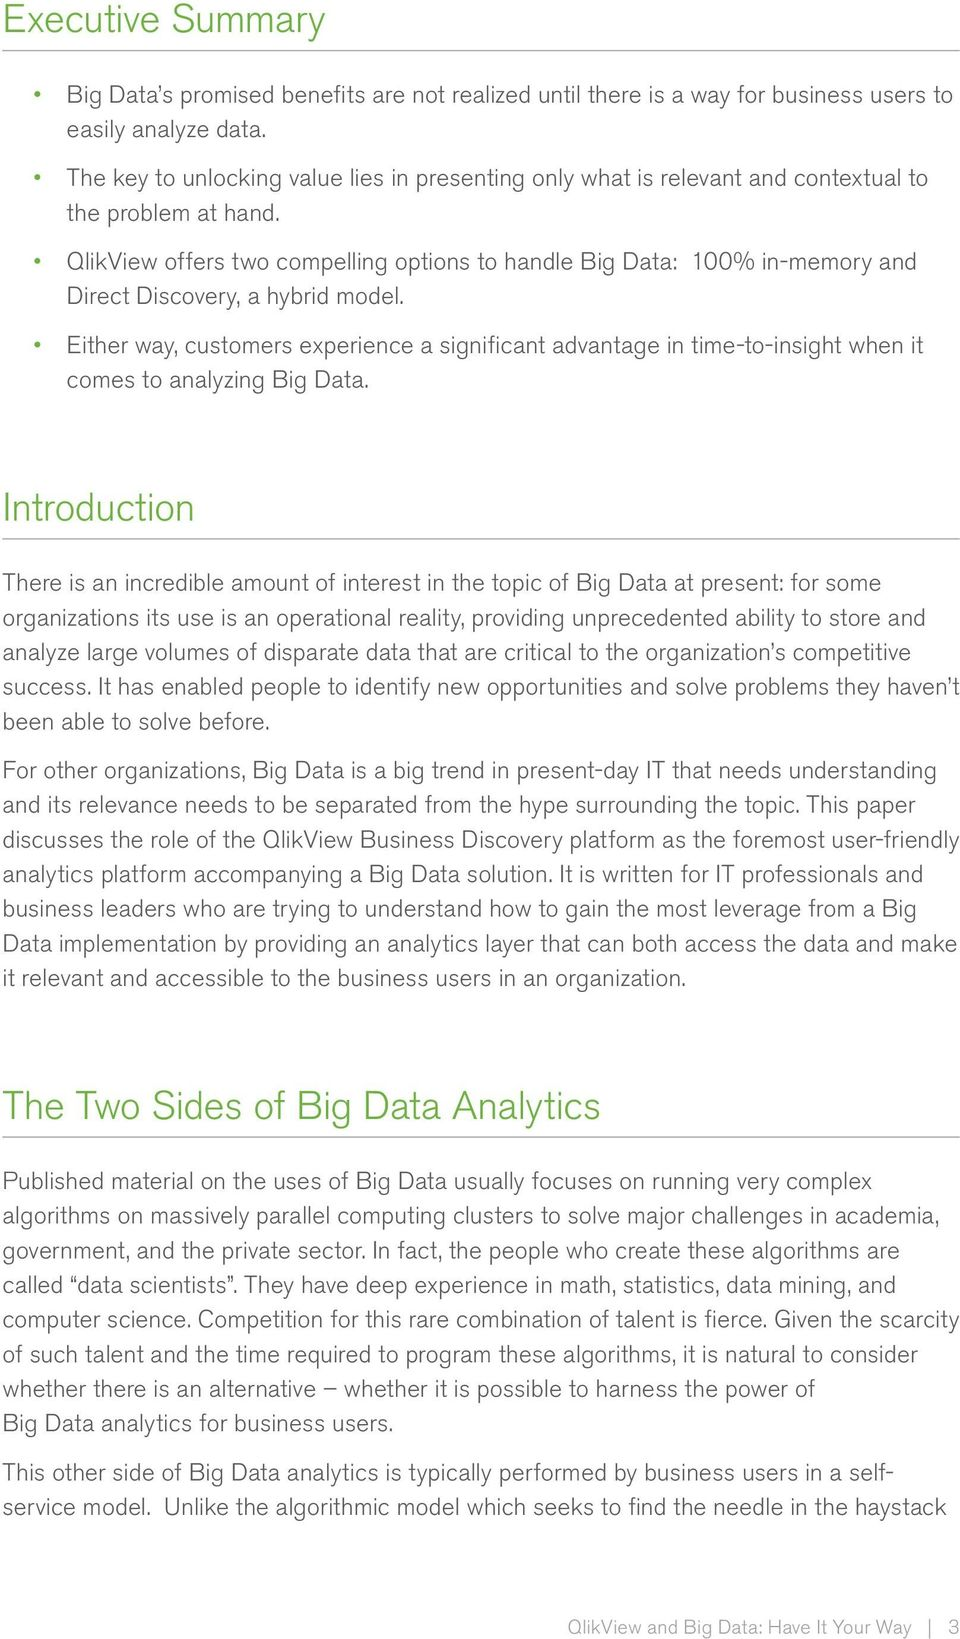 QlikView offers two compelling options to handle Big Data: 100% in-memory and Direct Discovery, a hybrid model.